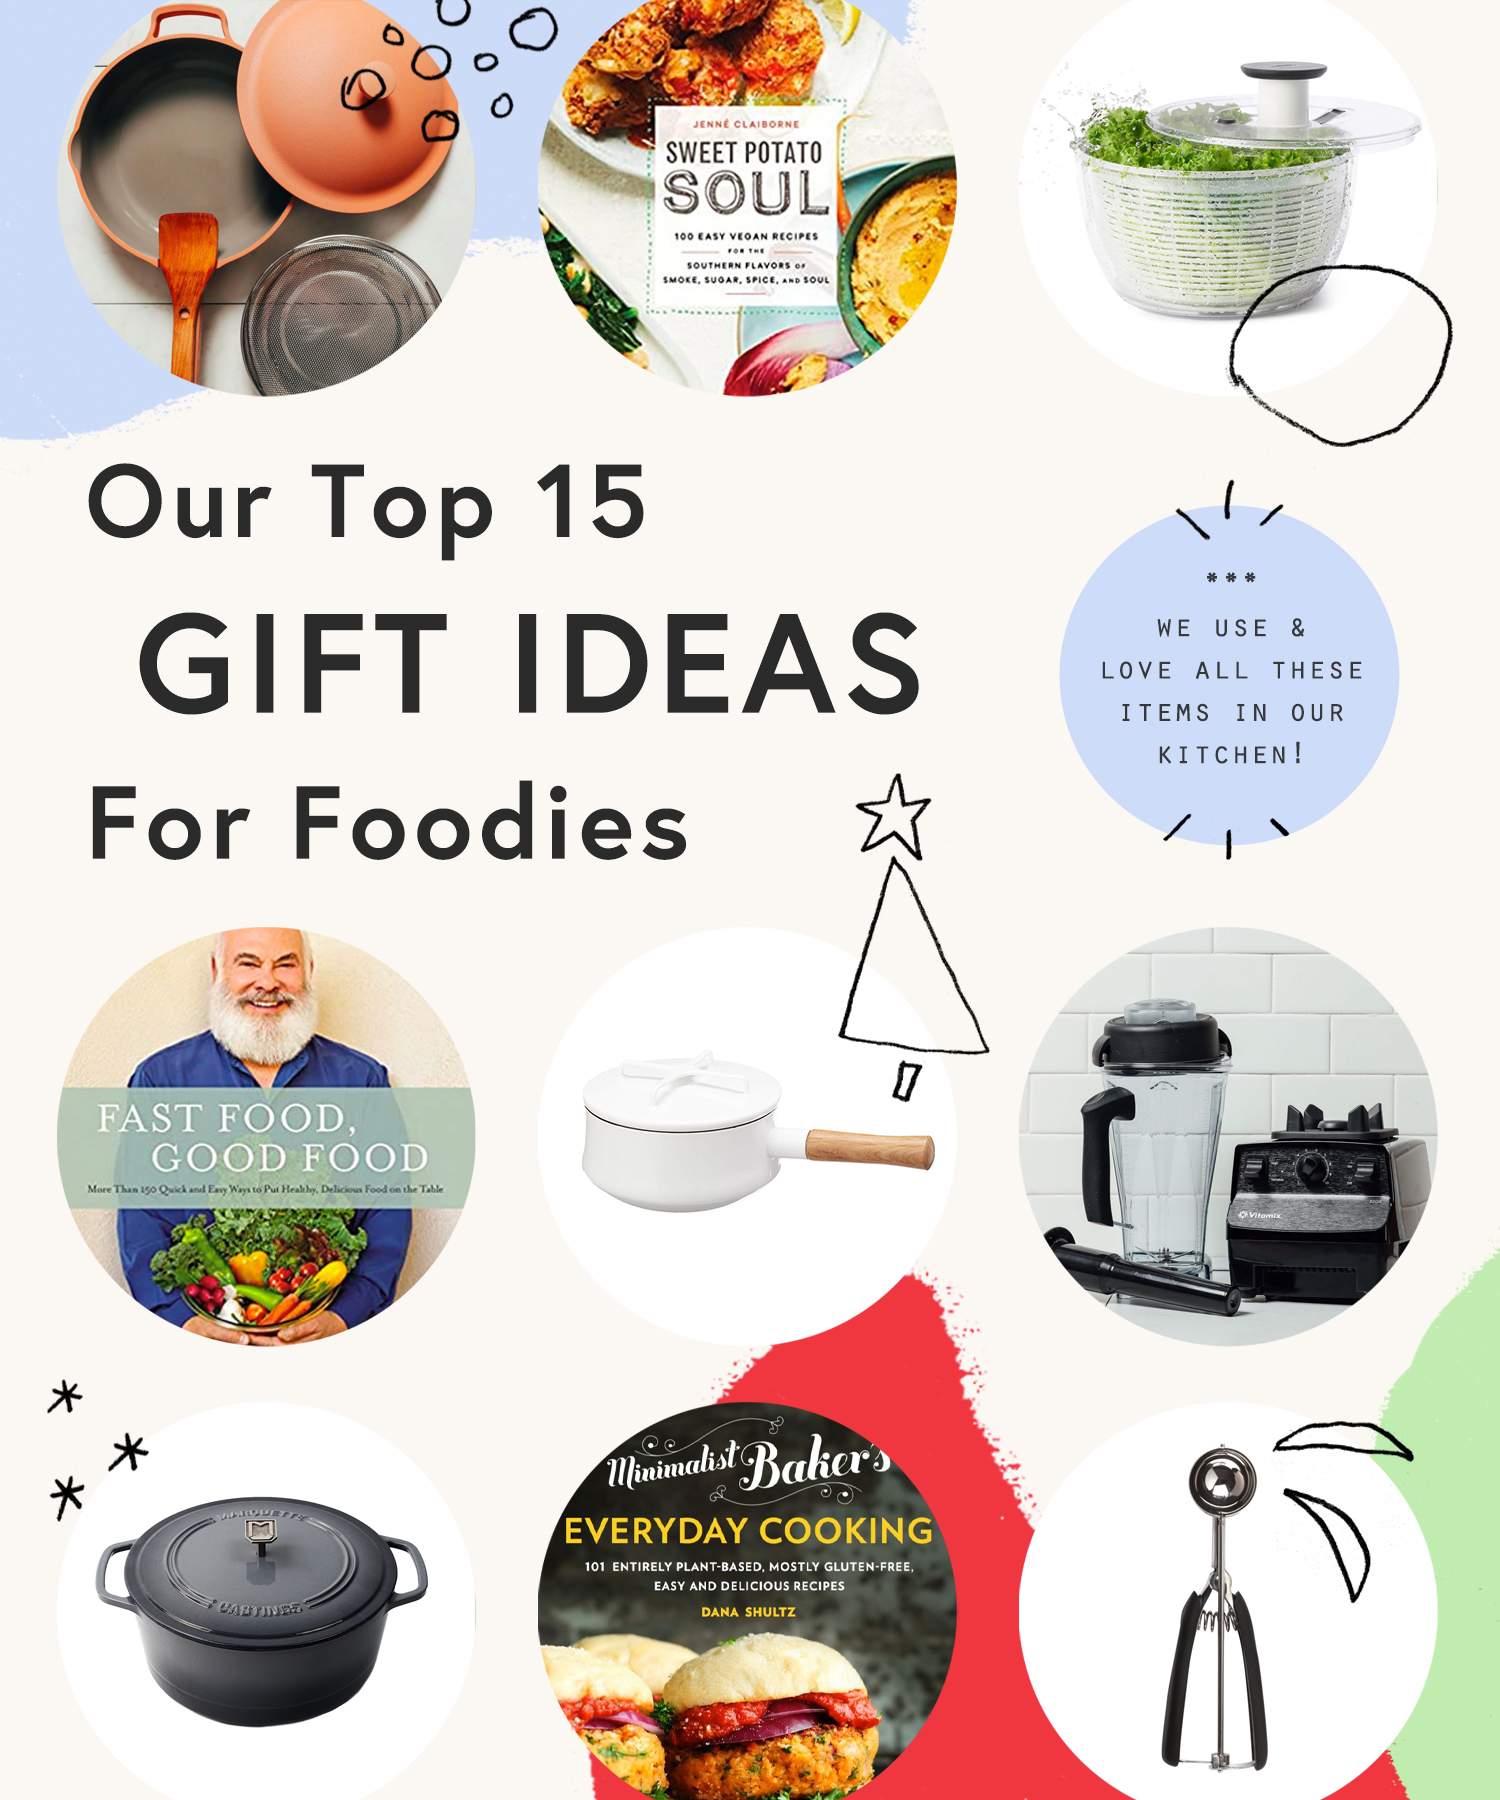 Assortment of holiday gift ideas for foodies